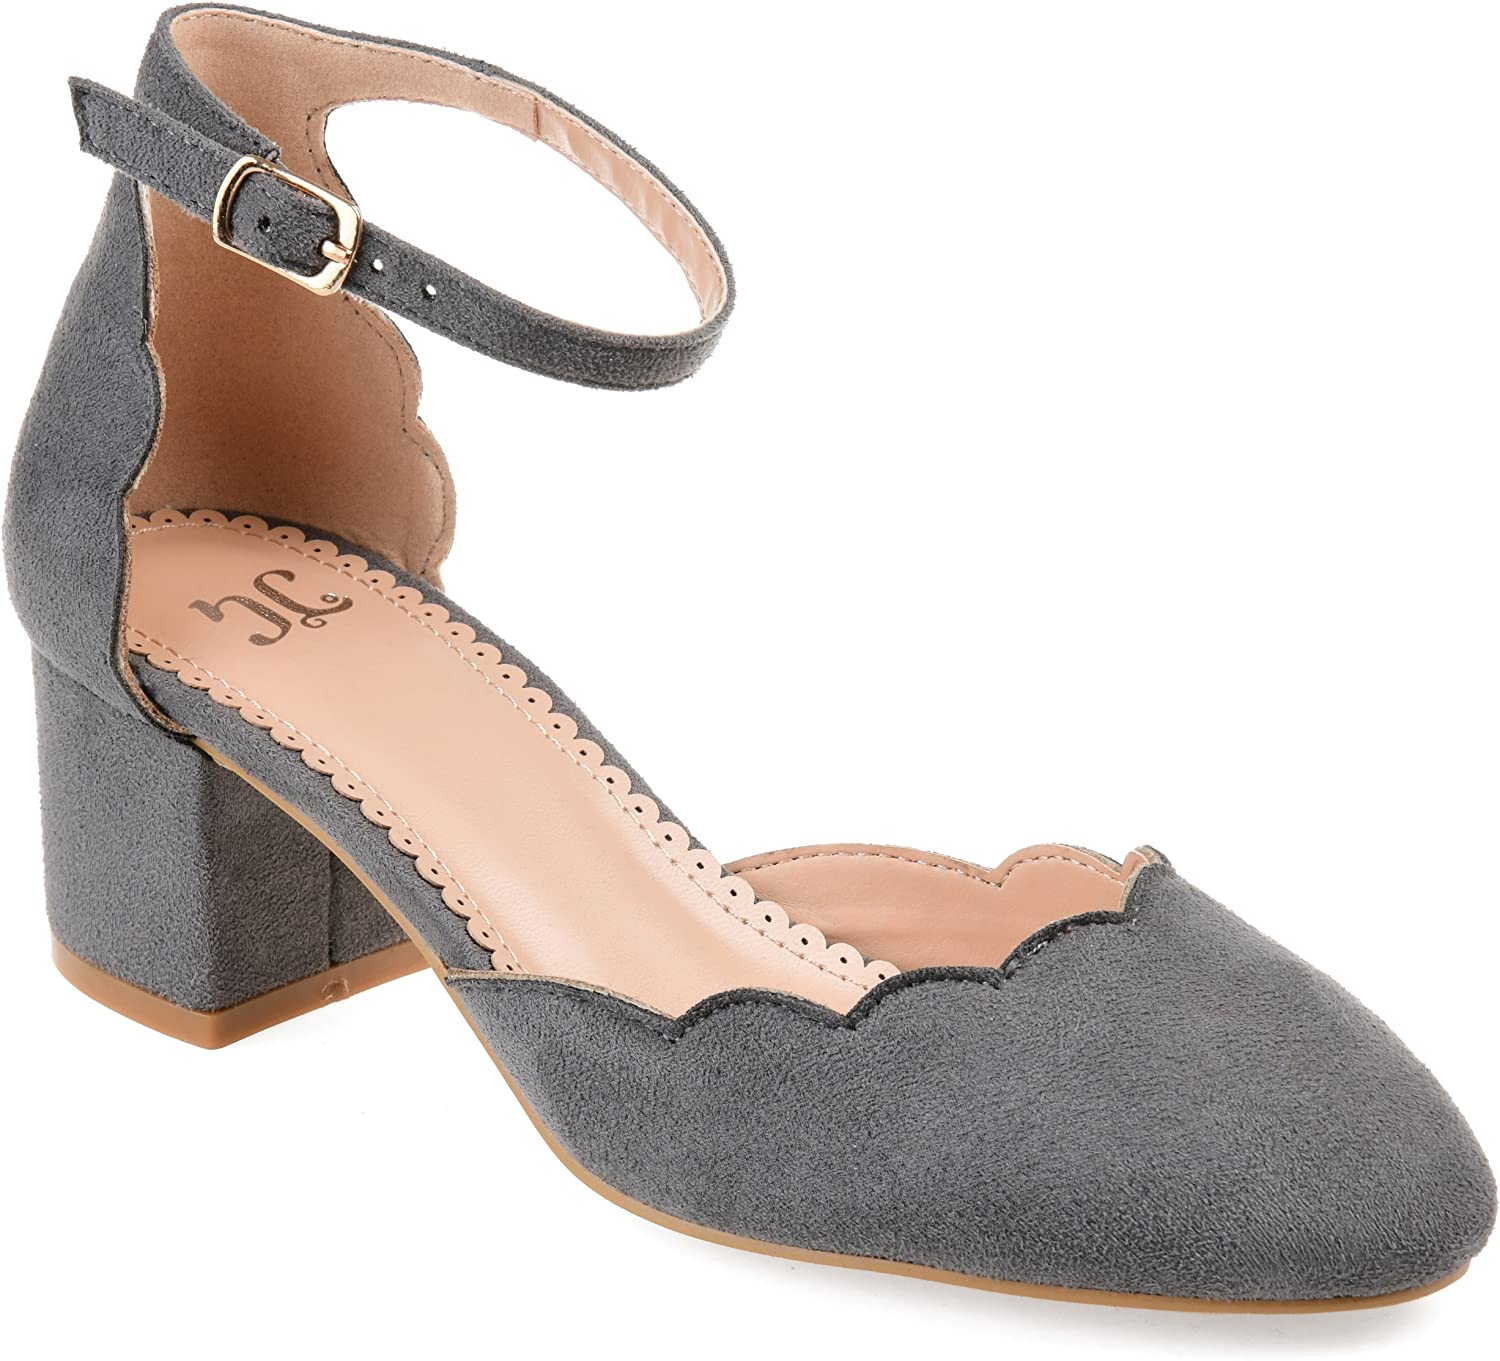 Journee Collection Womens Scalloped Ankle Strap Pumps